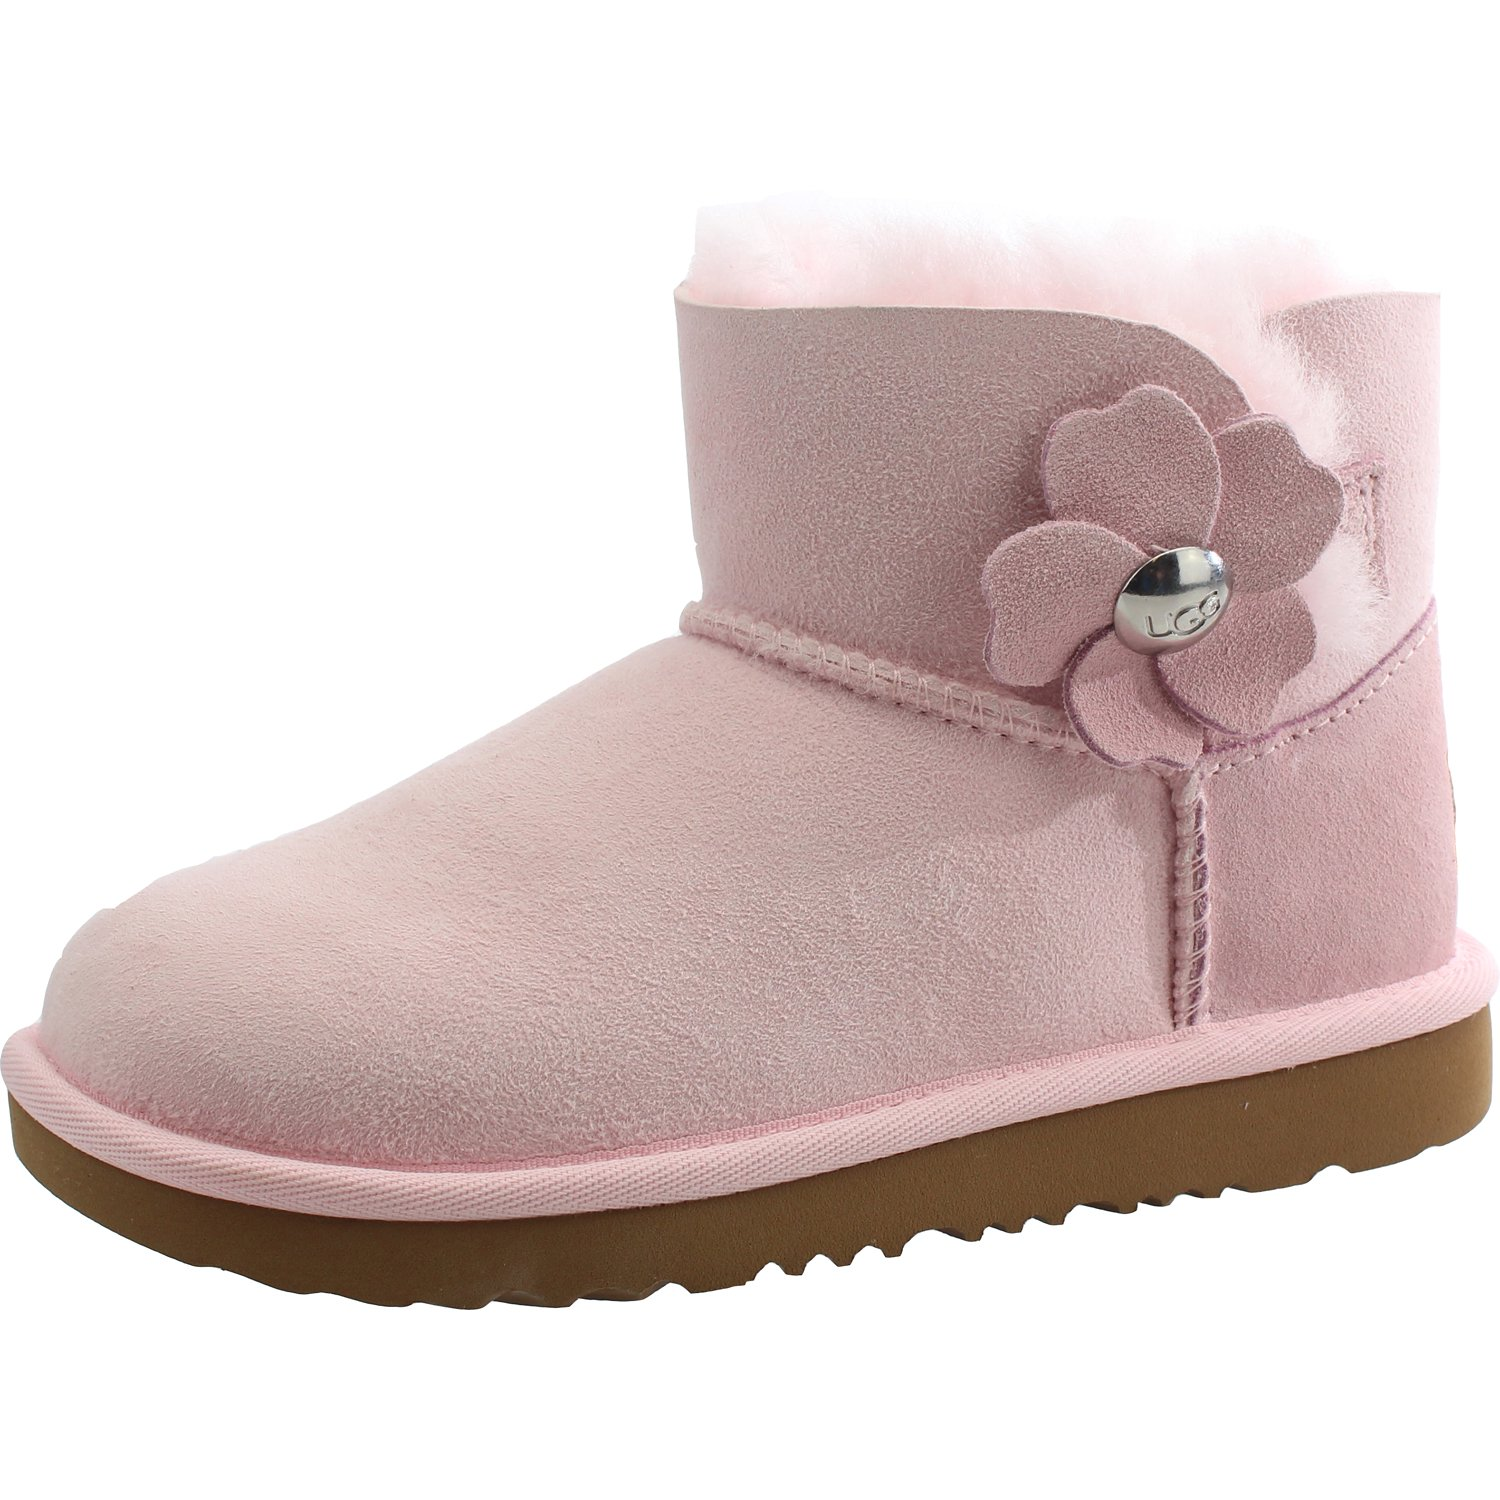 162ea141a07 UGG Australia Girls Mini Bailey Button Poppy Boot Pink Toddler UK11 ...